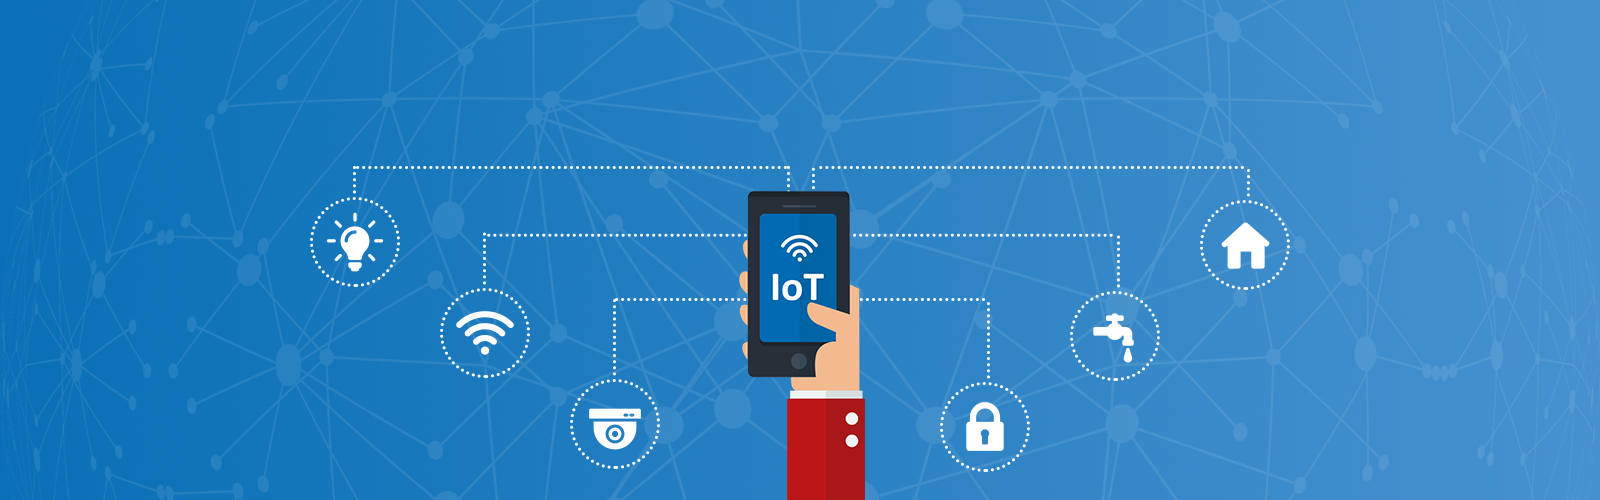 iot-app-development